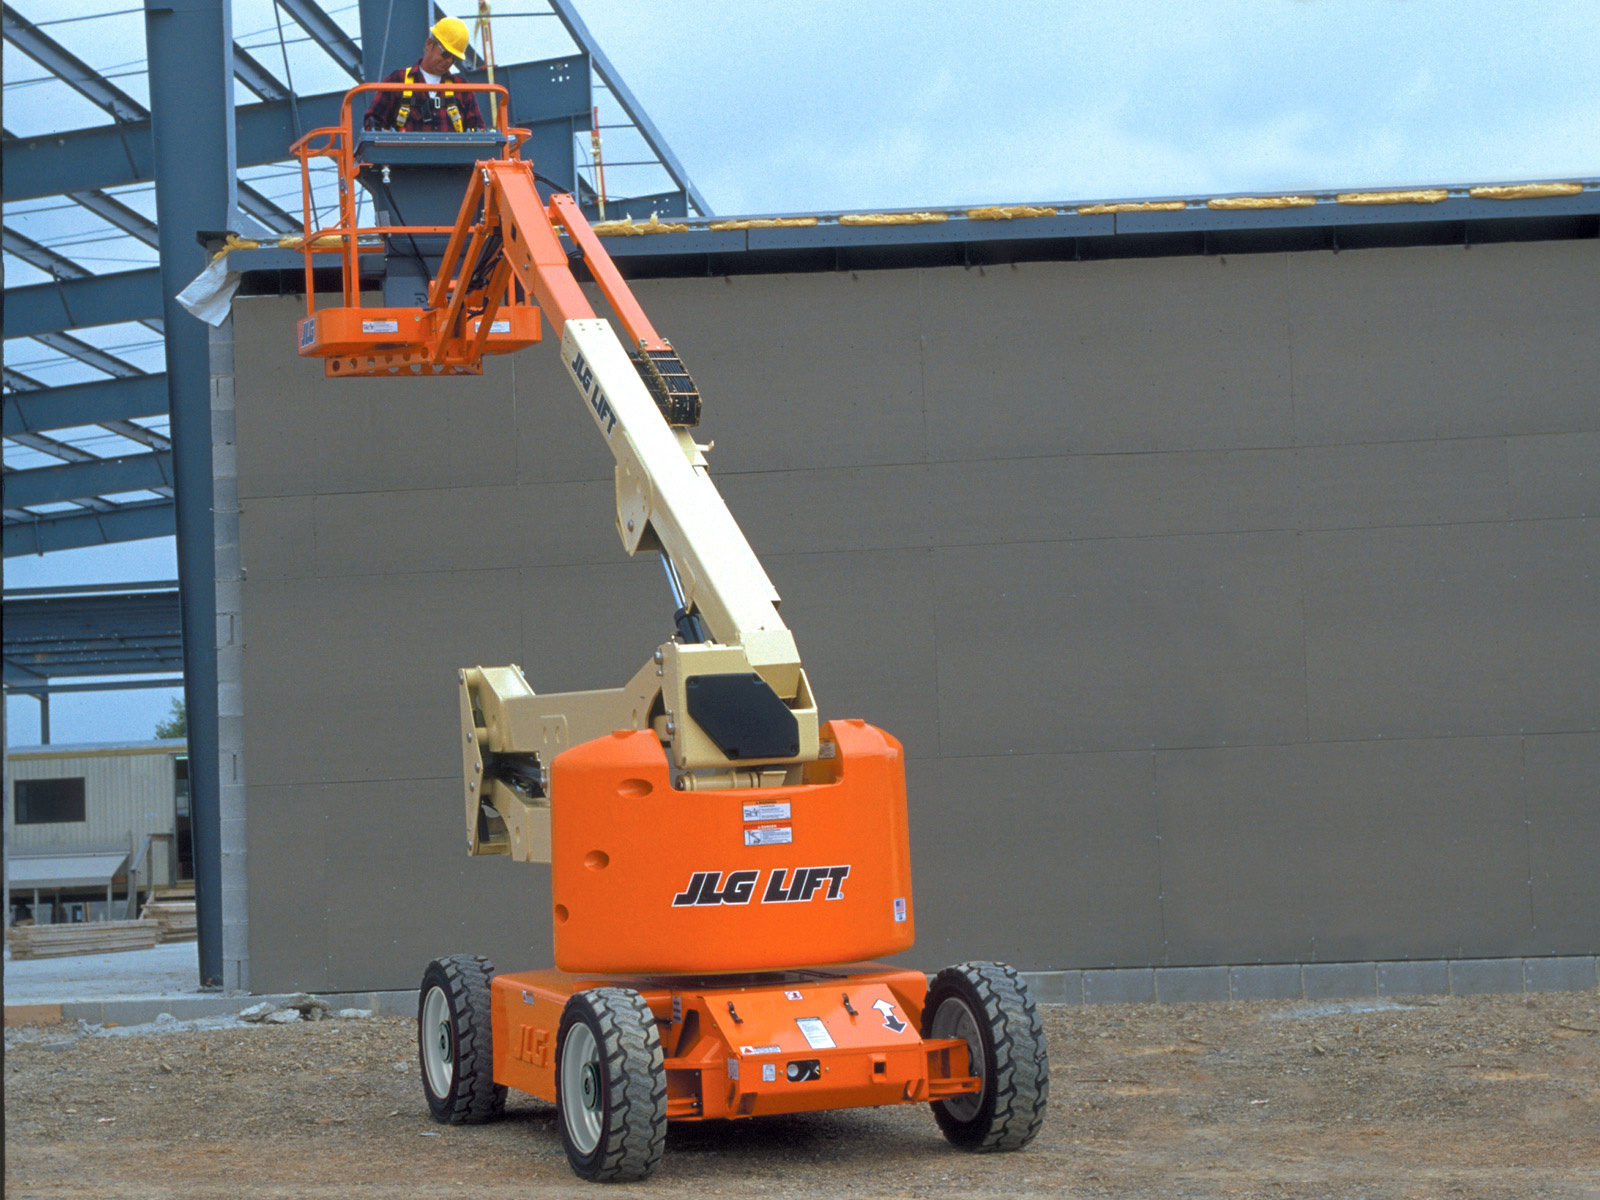 jlg 2033e wiring diagram free download wiring diagrams jlg 1932e awesome jlg  scissor lift control box